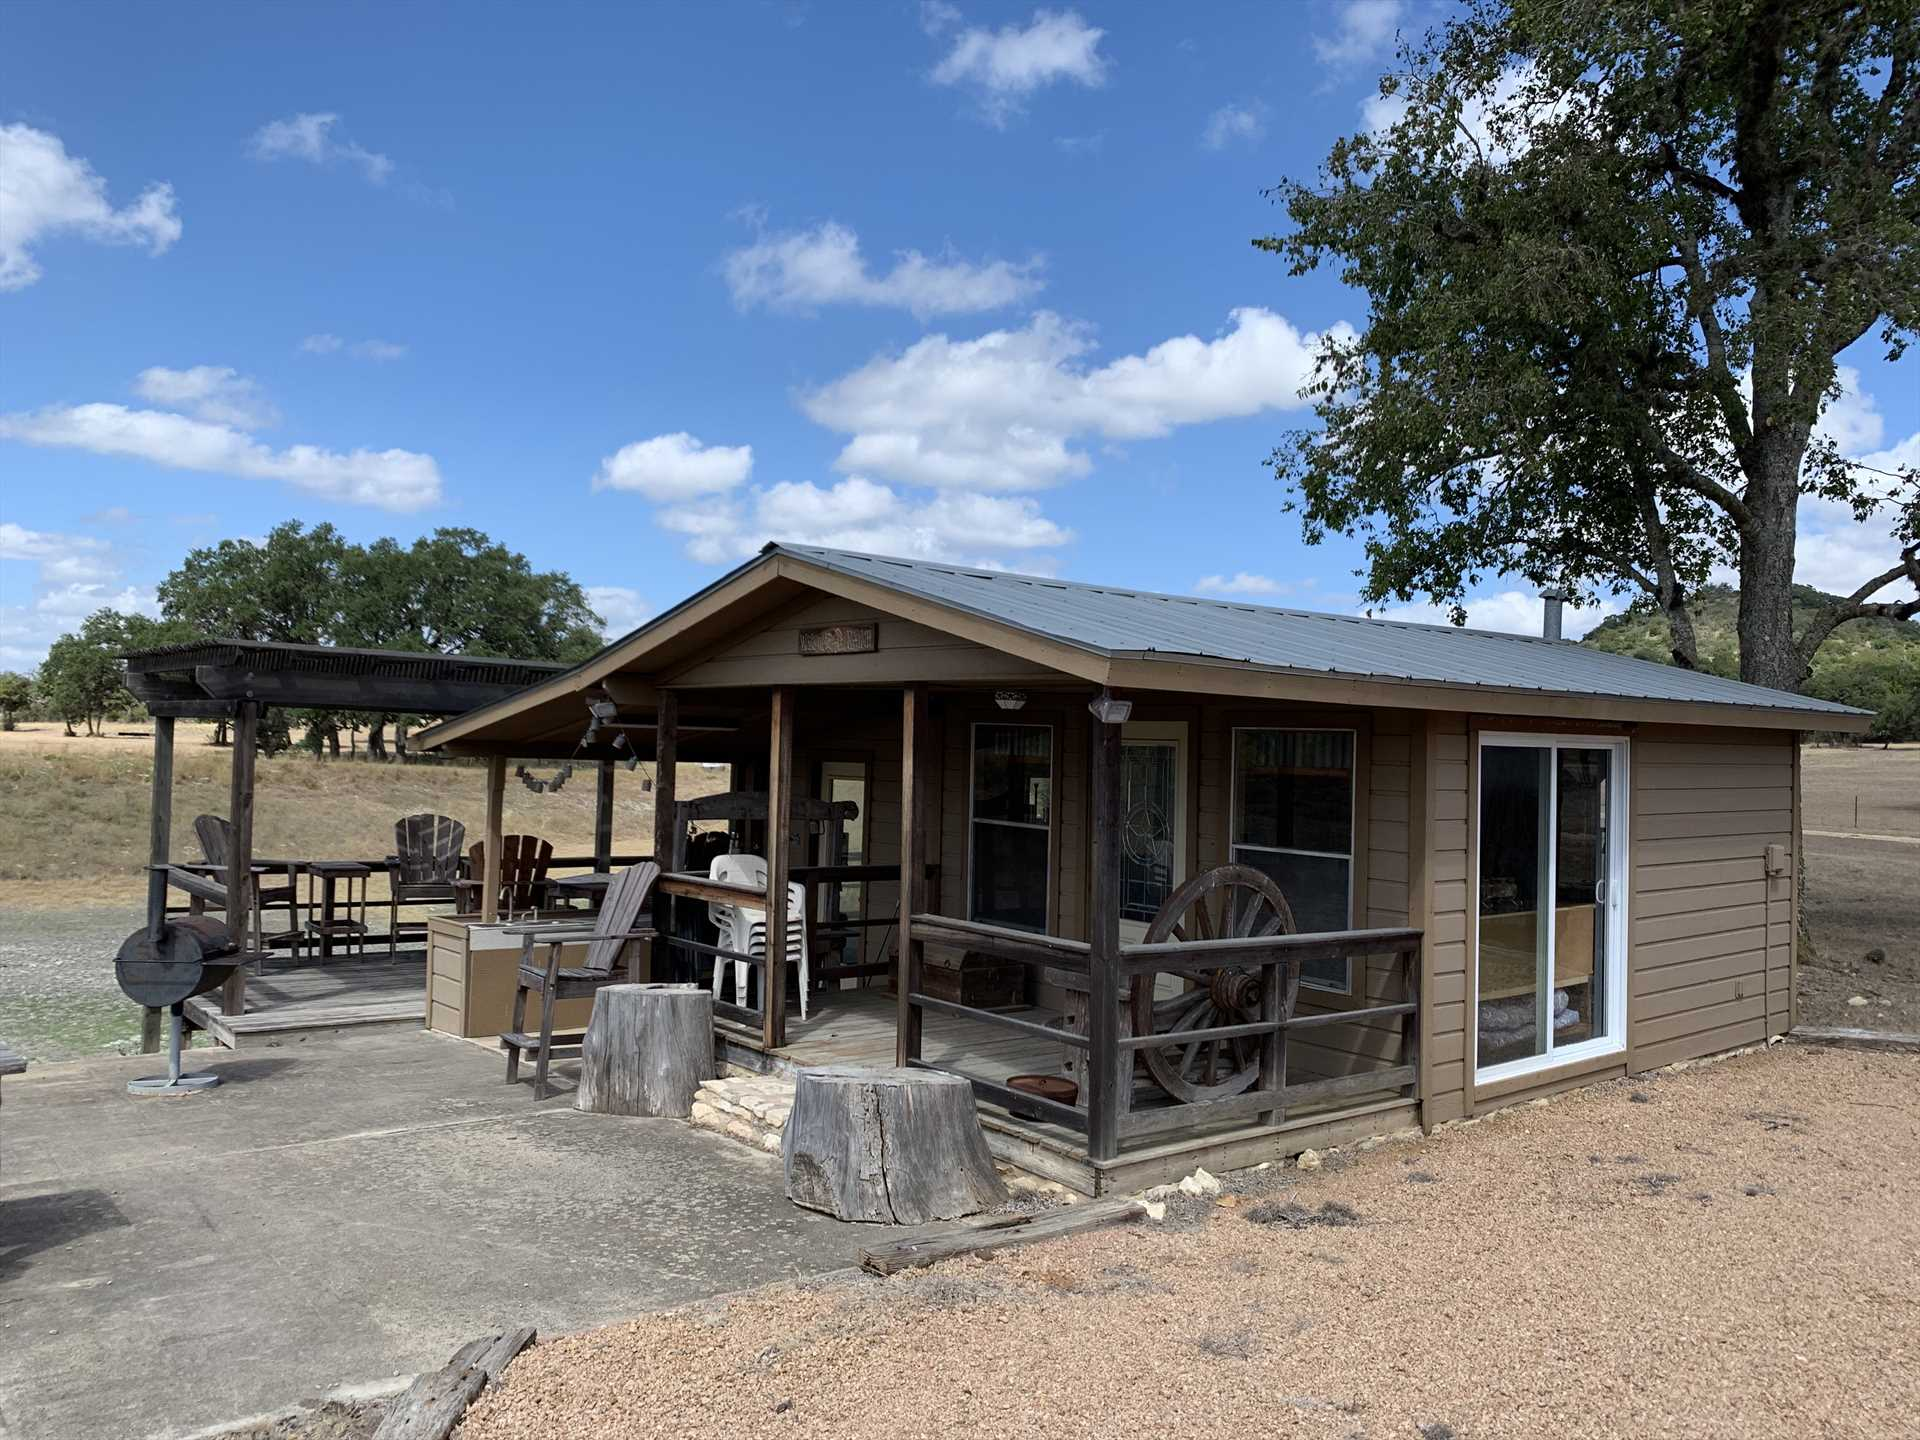 A shared pavilion provides space and cooking accommodations for all the guests at Tabasco Ranch.